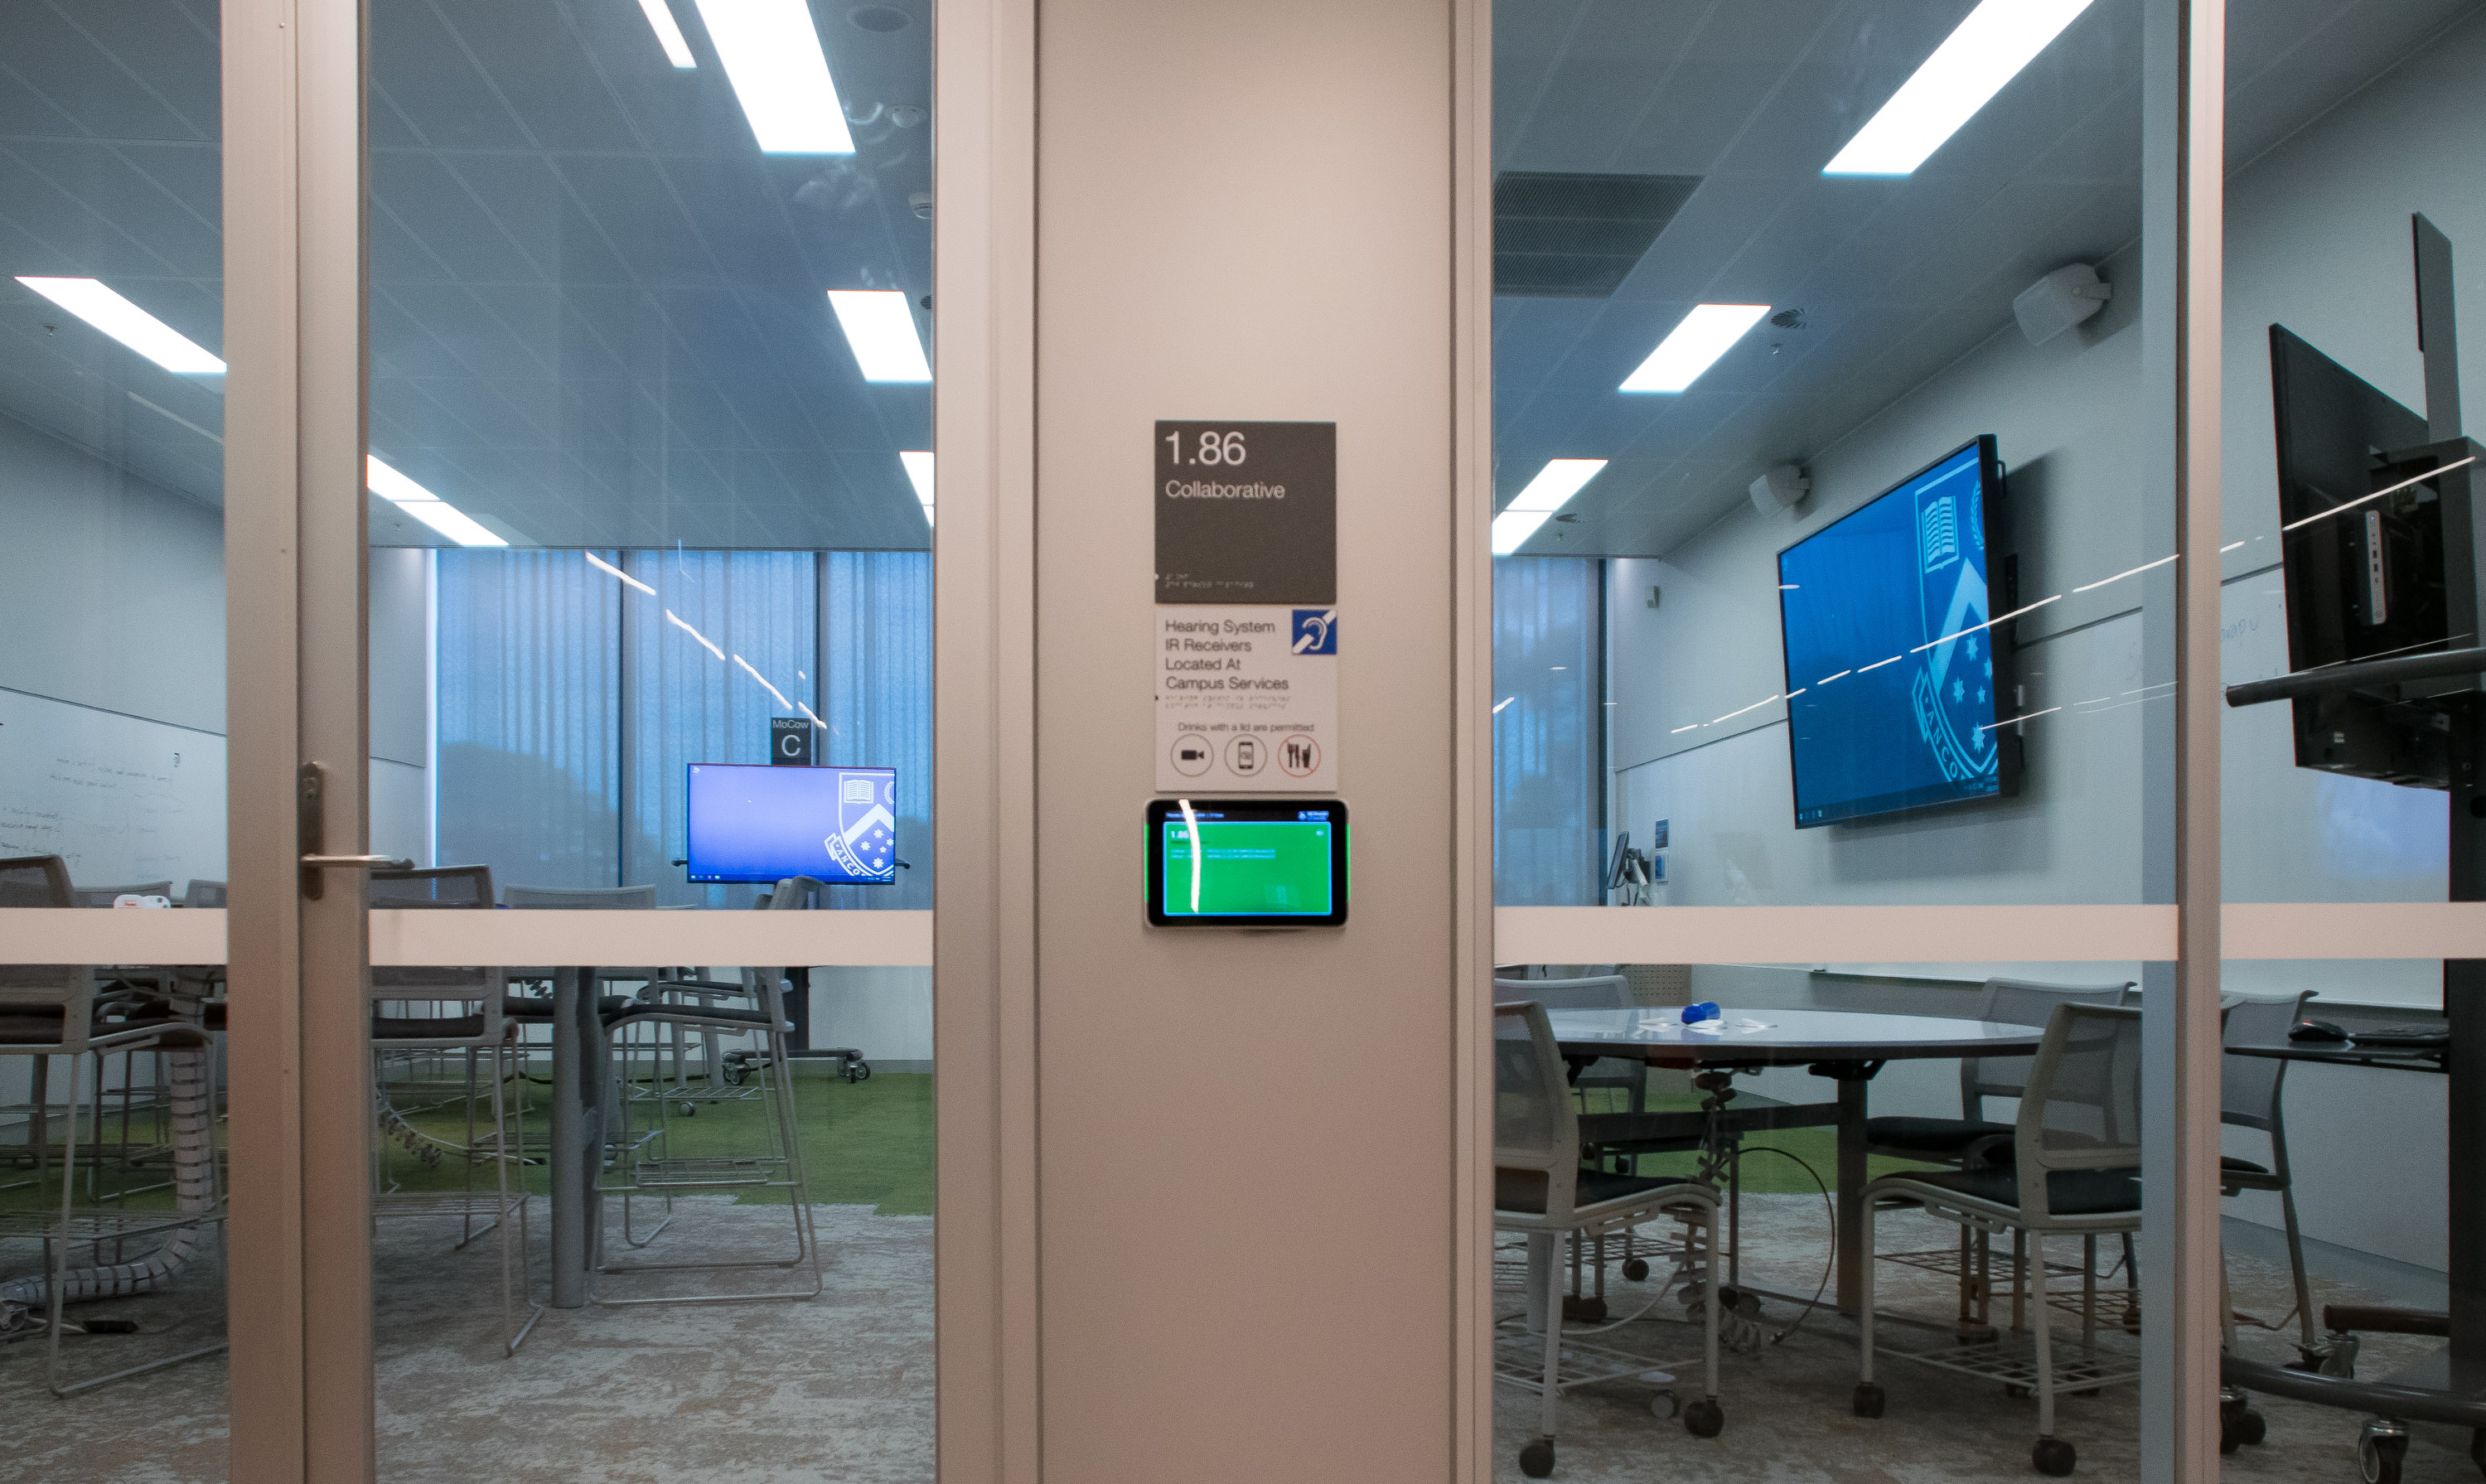 IAdea and Concierge Displays take room booking to the next level at Monash University's new Learning & Teaching Building